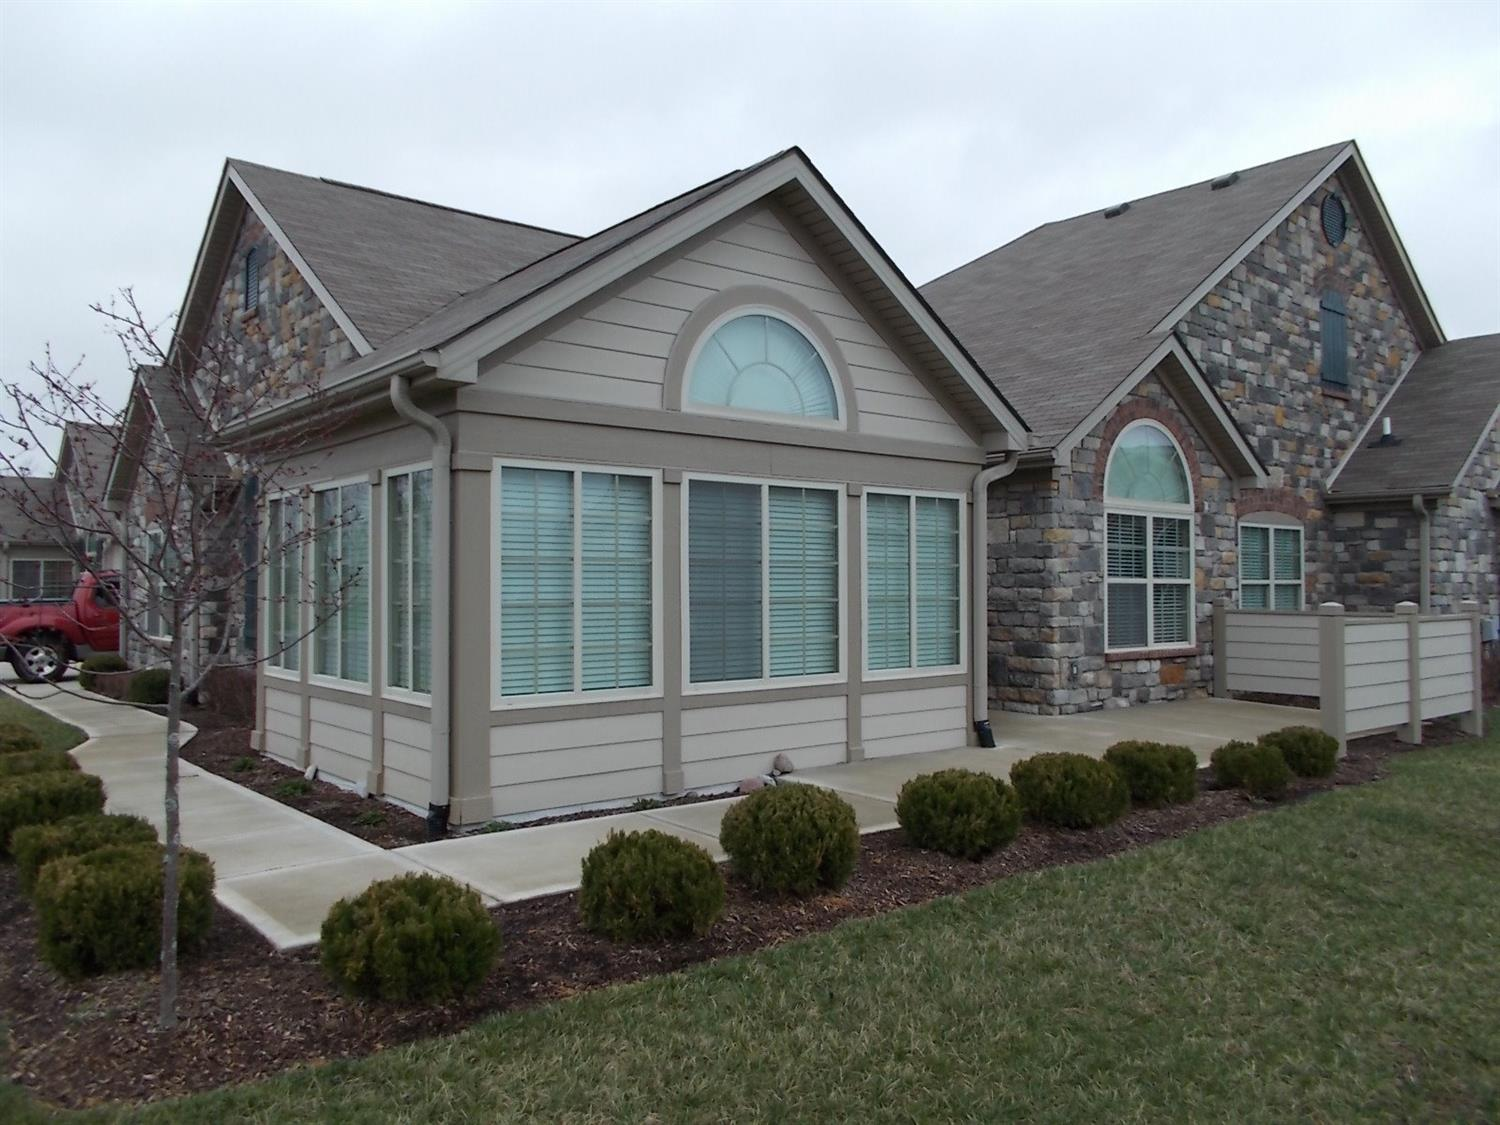 This%20one%20owner%20move%20in%20condition%20Condo%20in%20The%20Villas%20at%20Ridgefield%20Farm%20offers%20many%20upgrades.%20Custom%20Kitchen%20Cabinets%20with%20granite%20counter%20tops.%20Hardwood%20flooring%20in%20the%20Vaulted%20ceiling%20living%20room.%20Fireplace%20with%20gas%20logs.%20Master%20bedroom%20features%20a%20walk%20in%20closet%20and%20double%20vanity%20bathroom.%20This%20Condo%20offers%20not%20only%20a%20patio%20and%20a%20Sun%20Room%20but%20also%20a%20Flex%20Room.%20Association%20Fees%20$266.60%20per%20month%20-%20includes%20water,%20trash%20removal,%20lawn%20care,%20snow%20removal%20and%20use%20of%20club%20house.%20The%20club%20house%20offers%20a%20fitness%20center%20and%20pool.